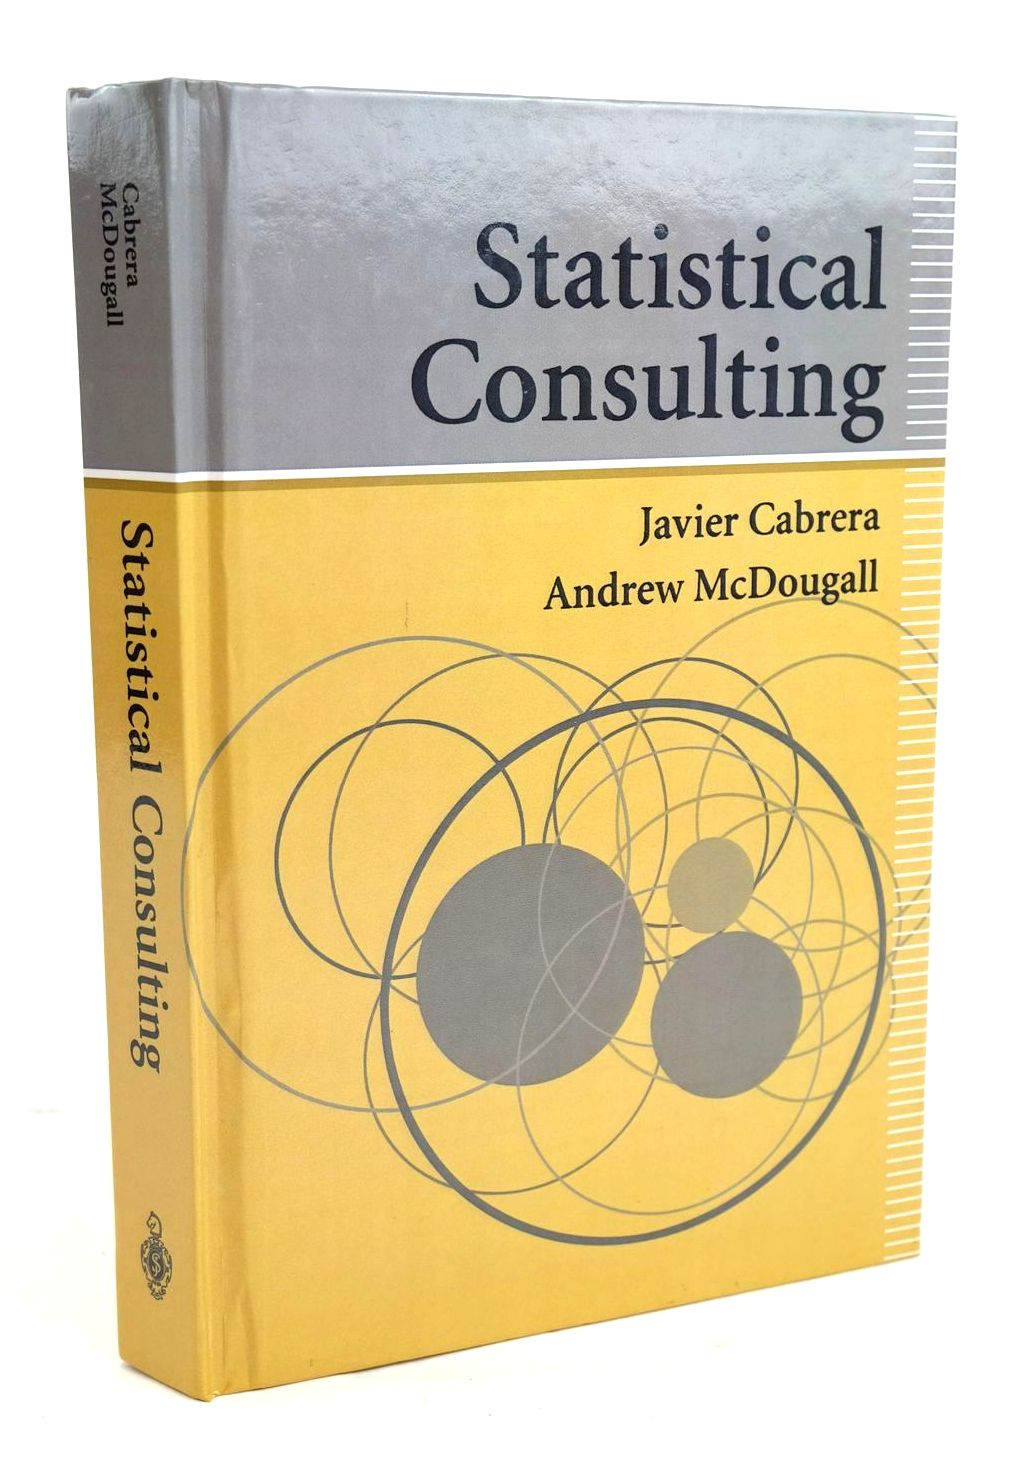 Photo of STATISTICAL CONSULTING written by Cabrera, Javier McDougall, Andrew published by Springer-Verlag (STOCK CODE: 1319631)  for sale by Stella & Rose's Books